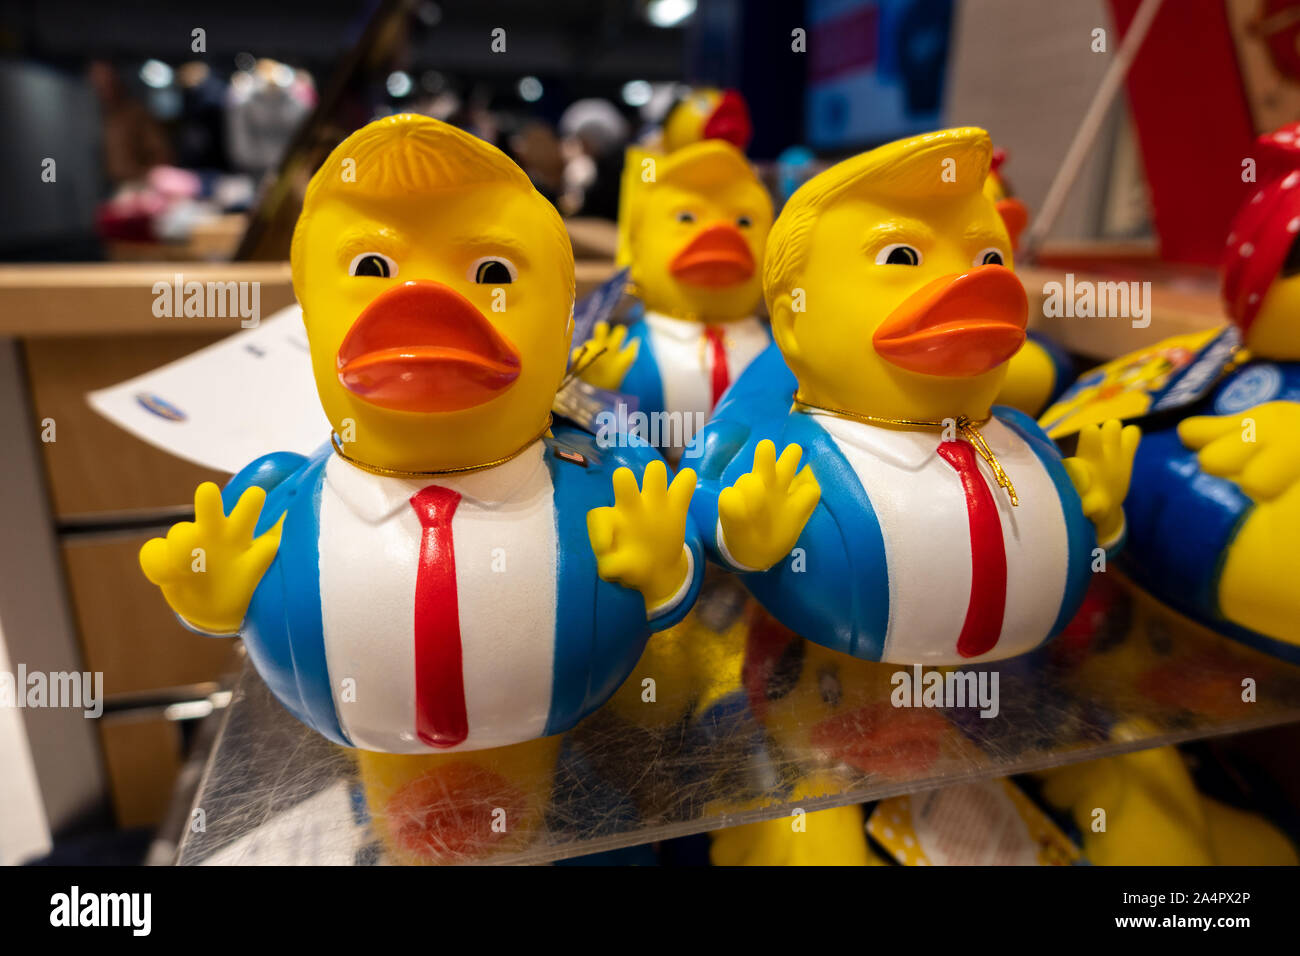 https://c7.alamy.com/comp/2A4PX2P/funny-donald-trump-rubber-duck-novelty-toy-2020-election-campaign-souvenirs-for-sale-2A4PX2P.jpg